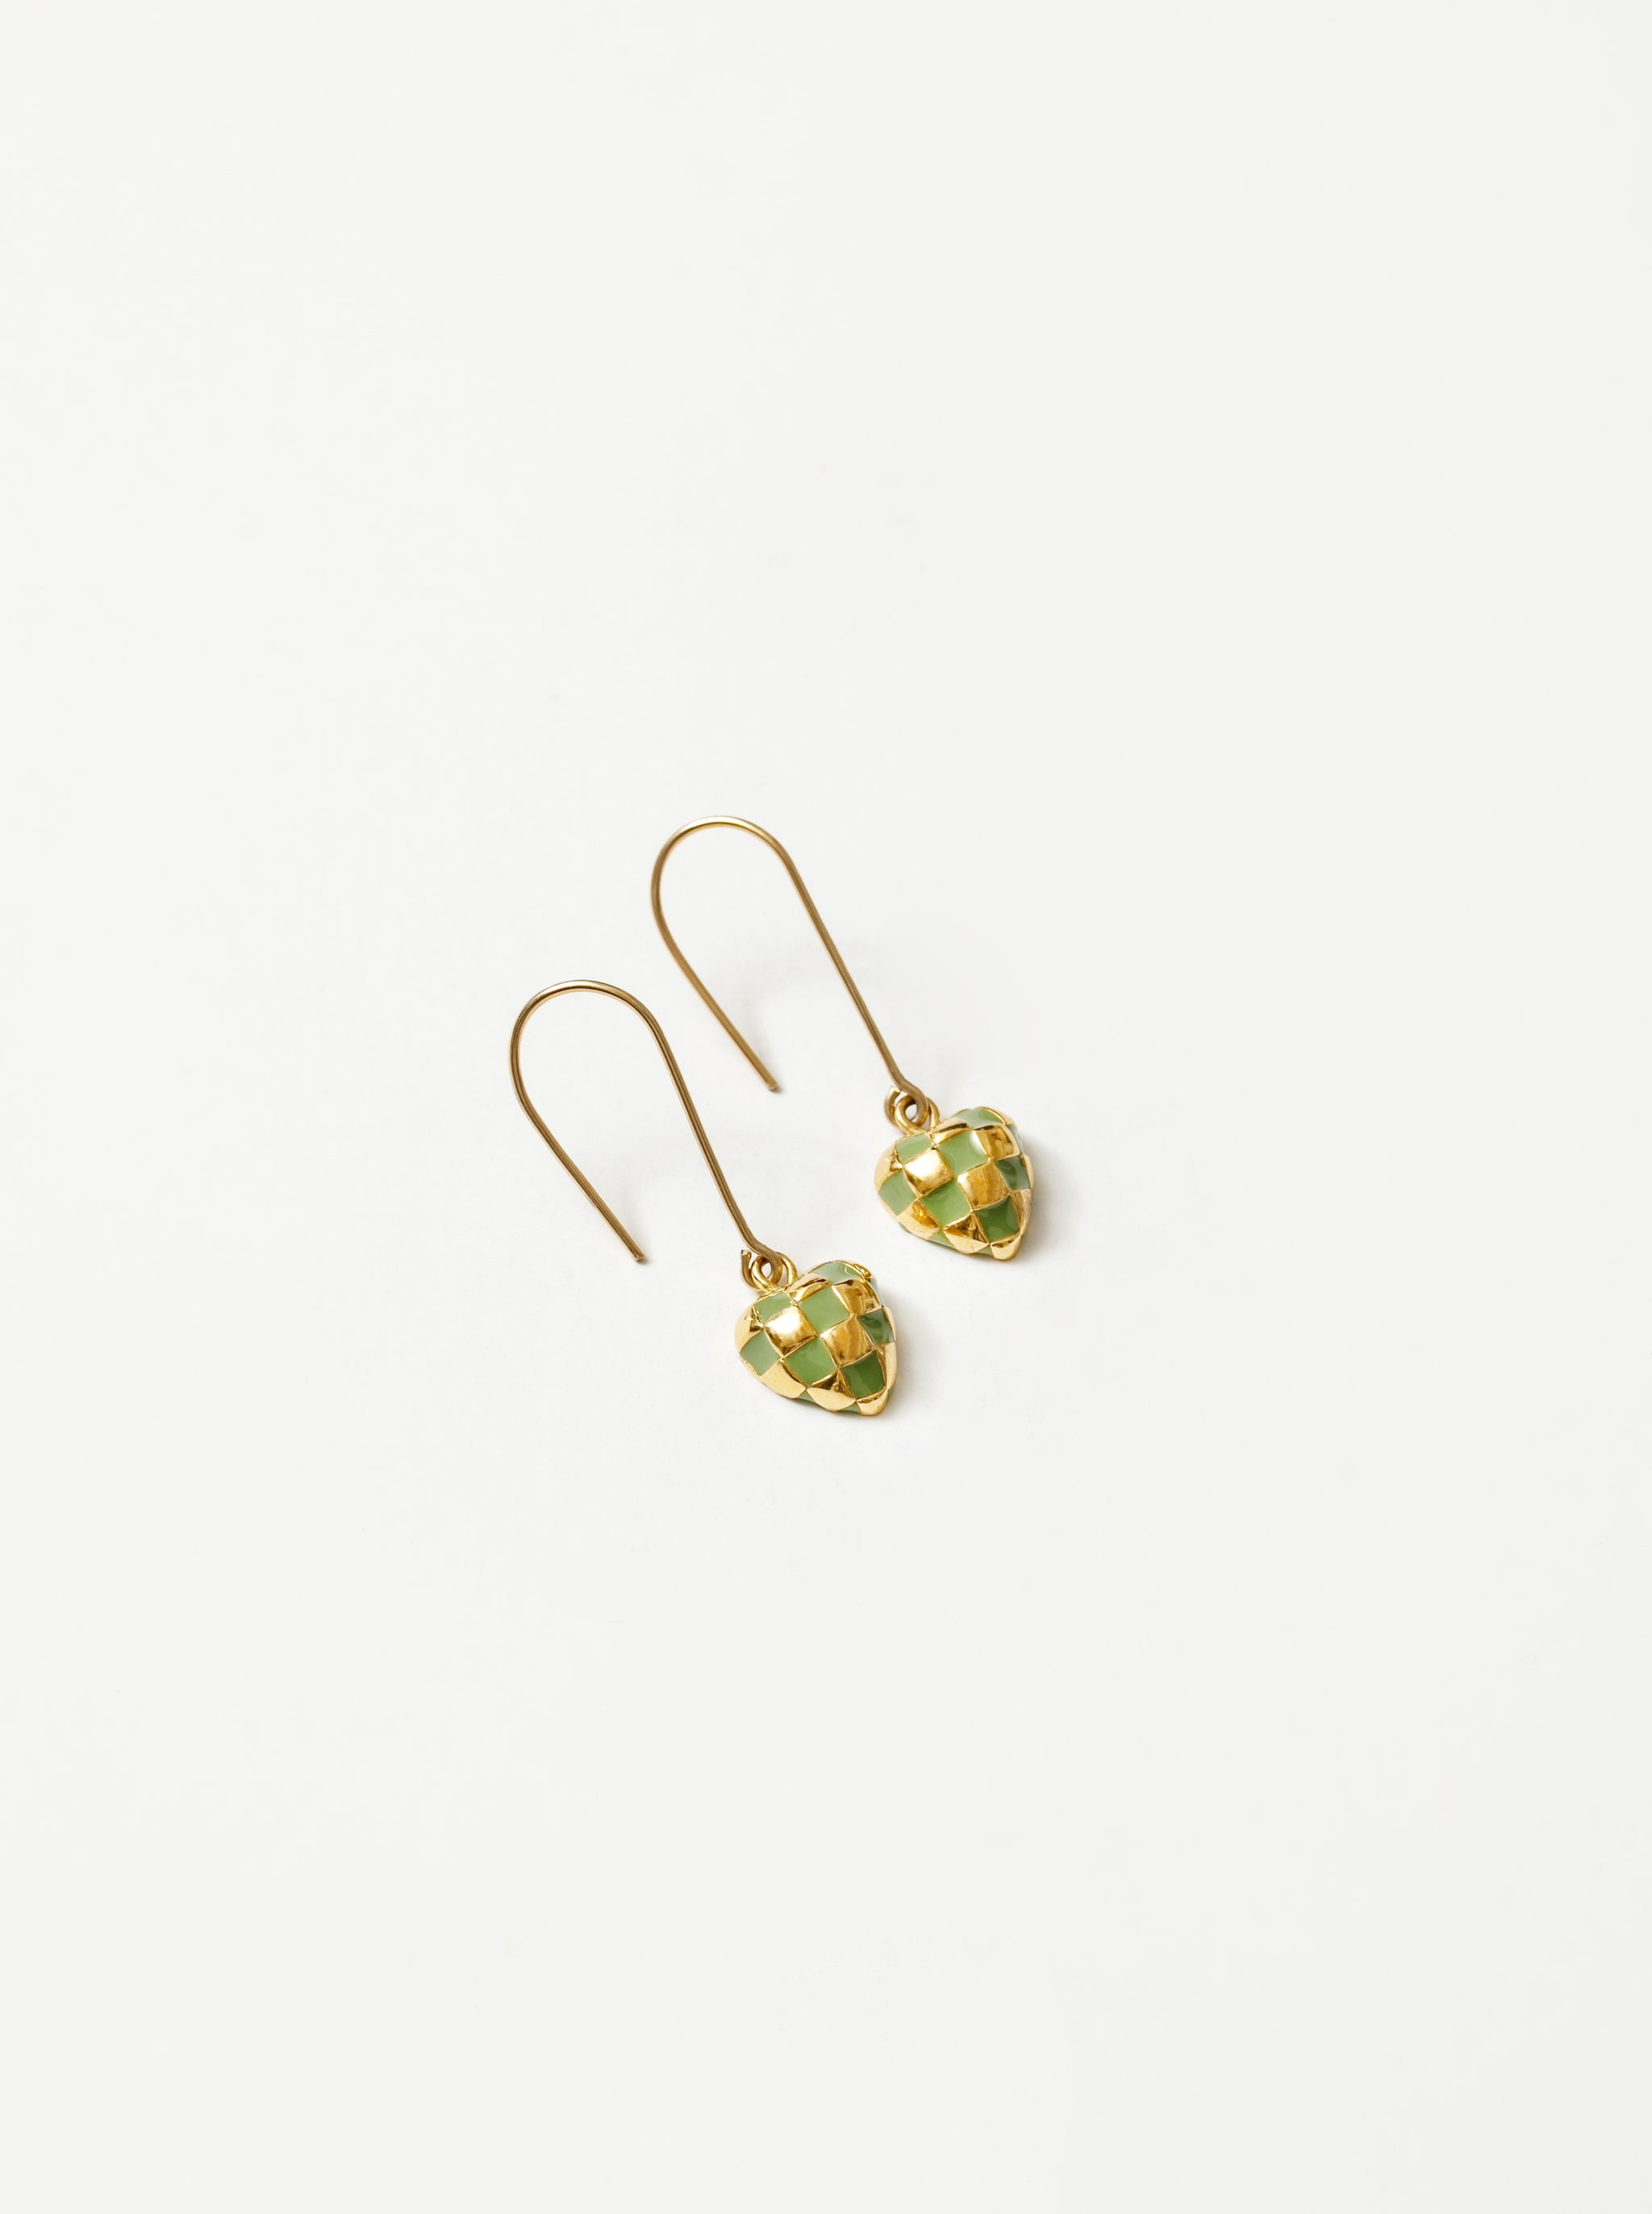 Georgia Earrings in Green and Gold